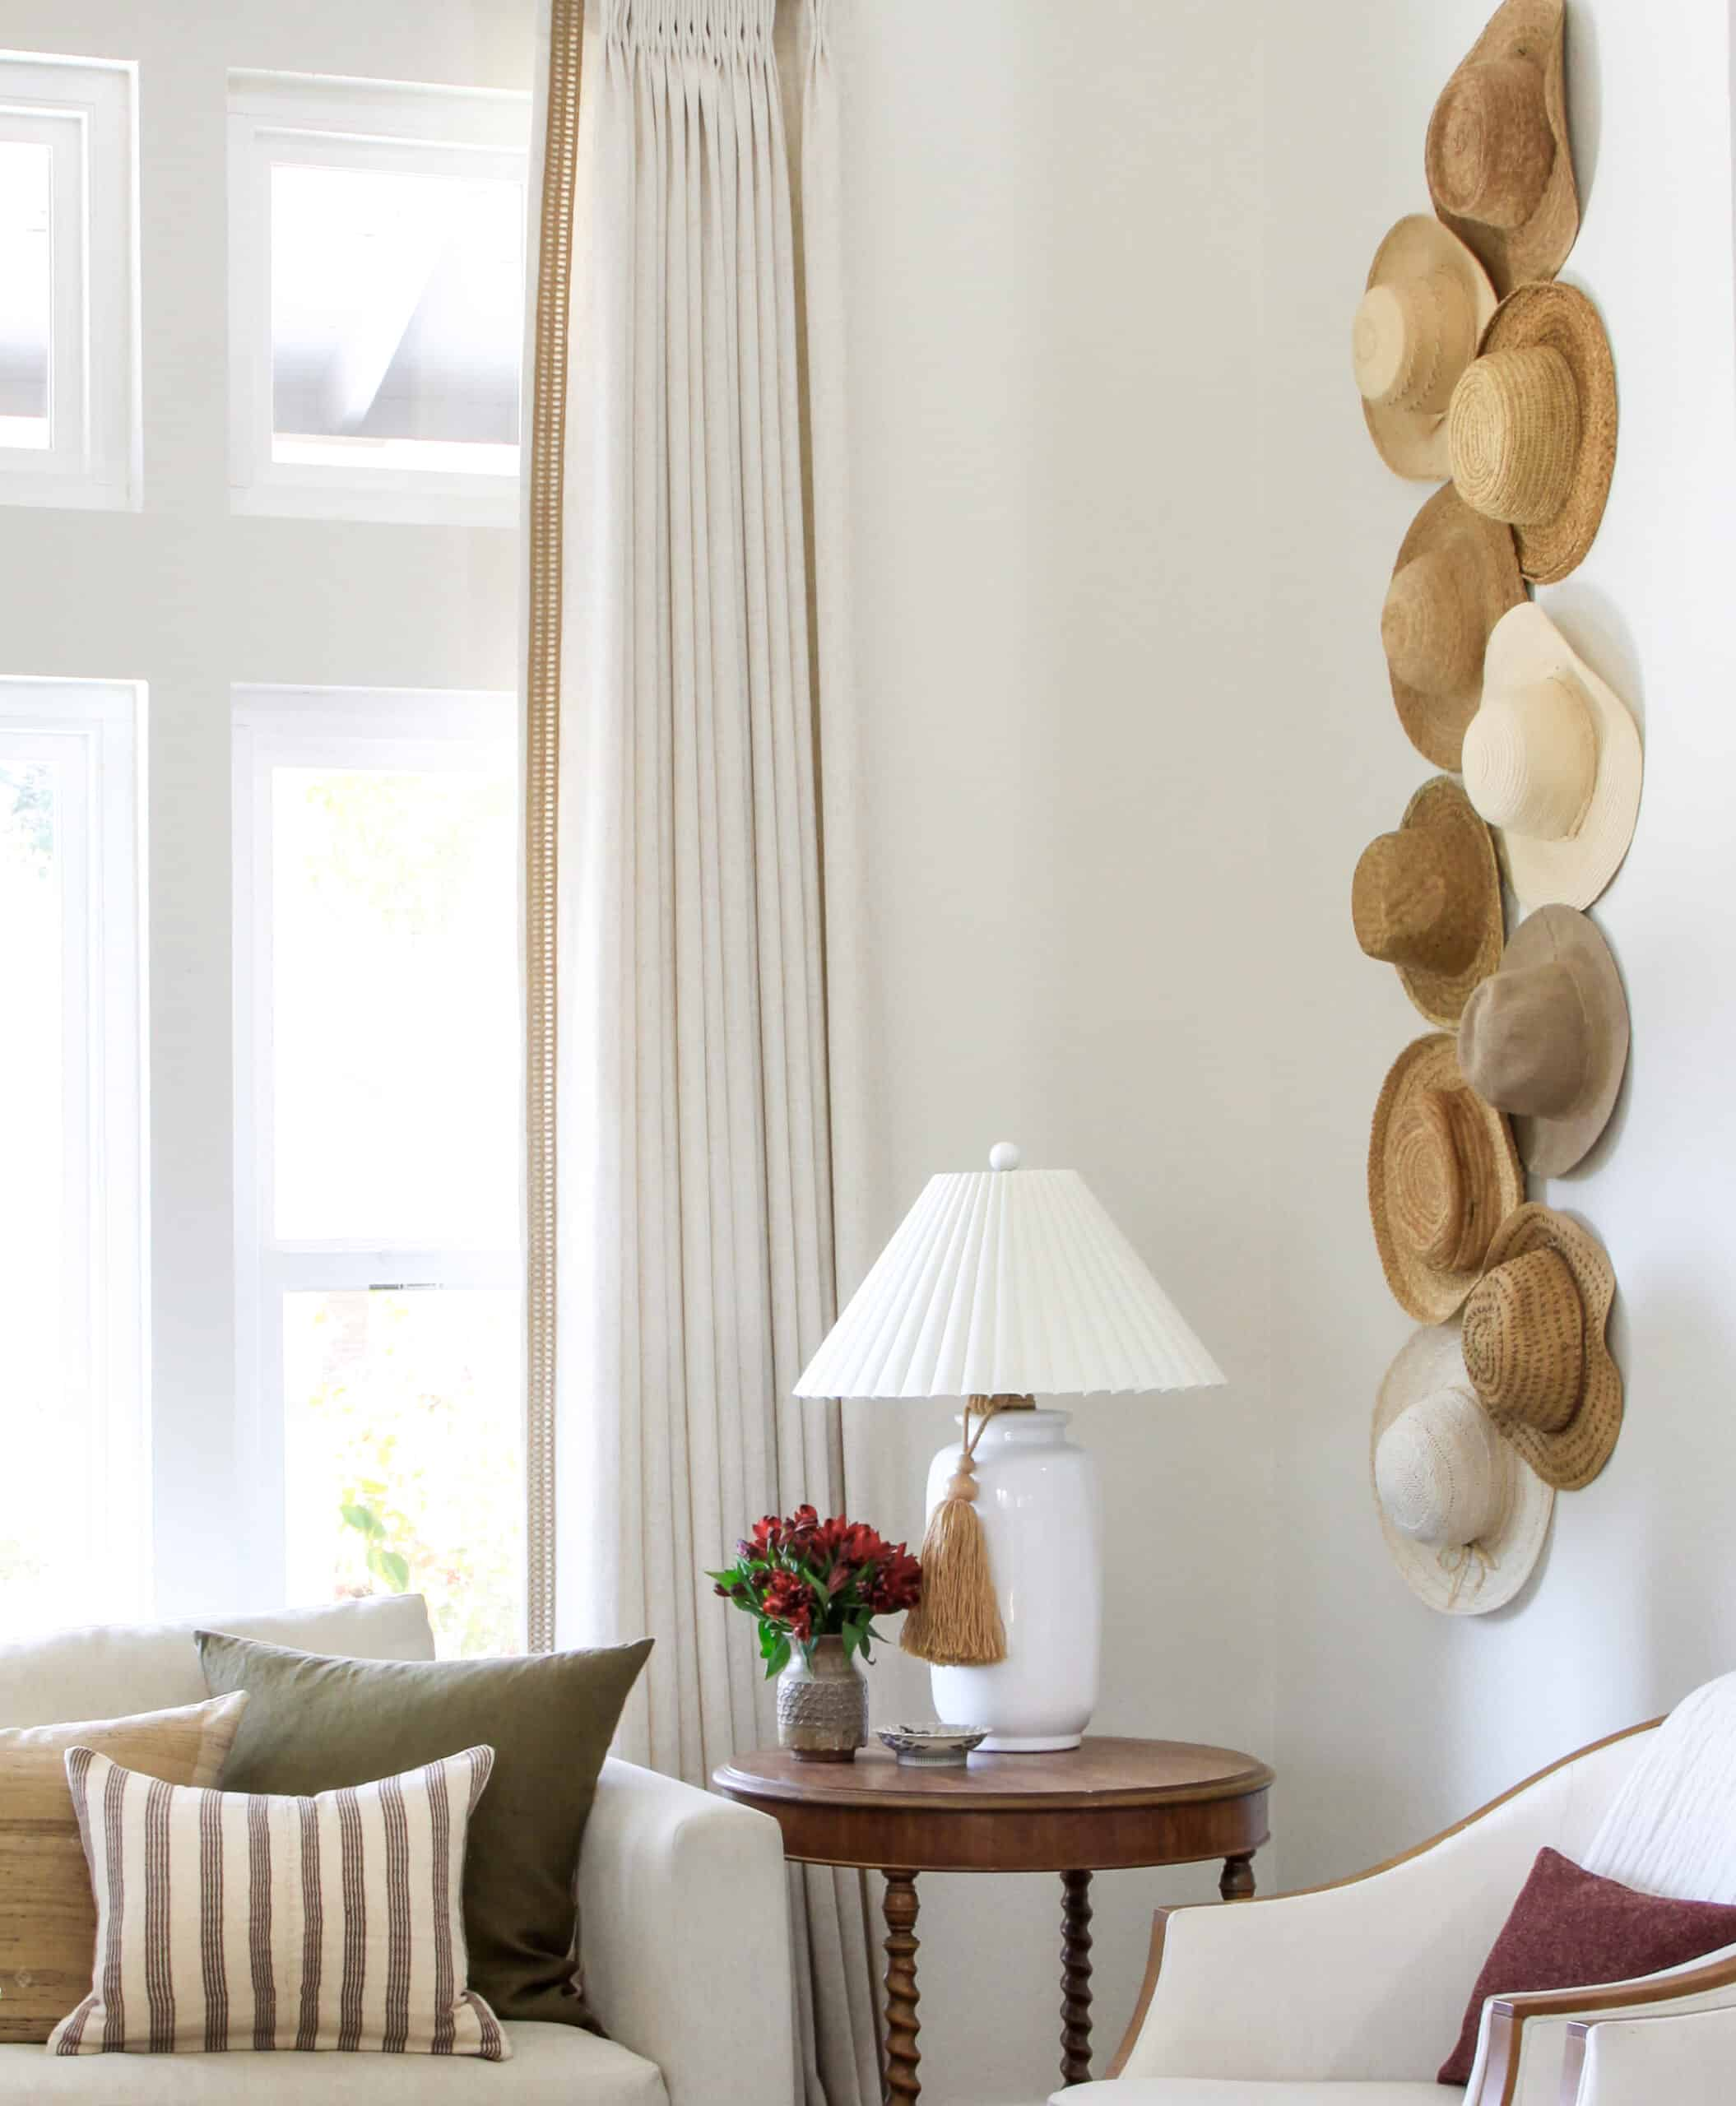 neutral living room with straw hats on the wall, white lamp, and curtains with jute decorative trim